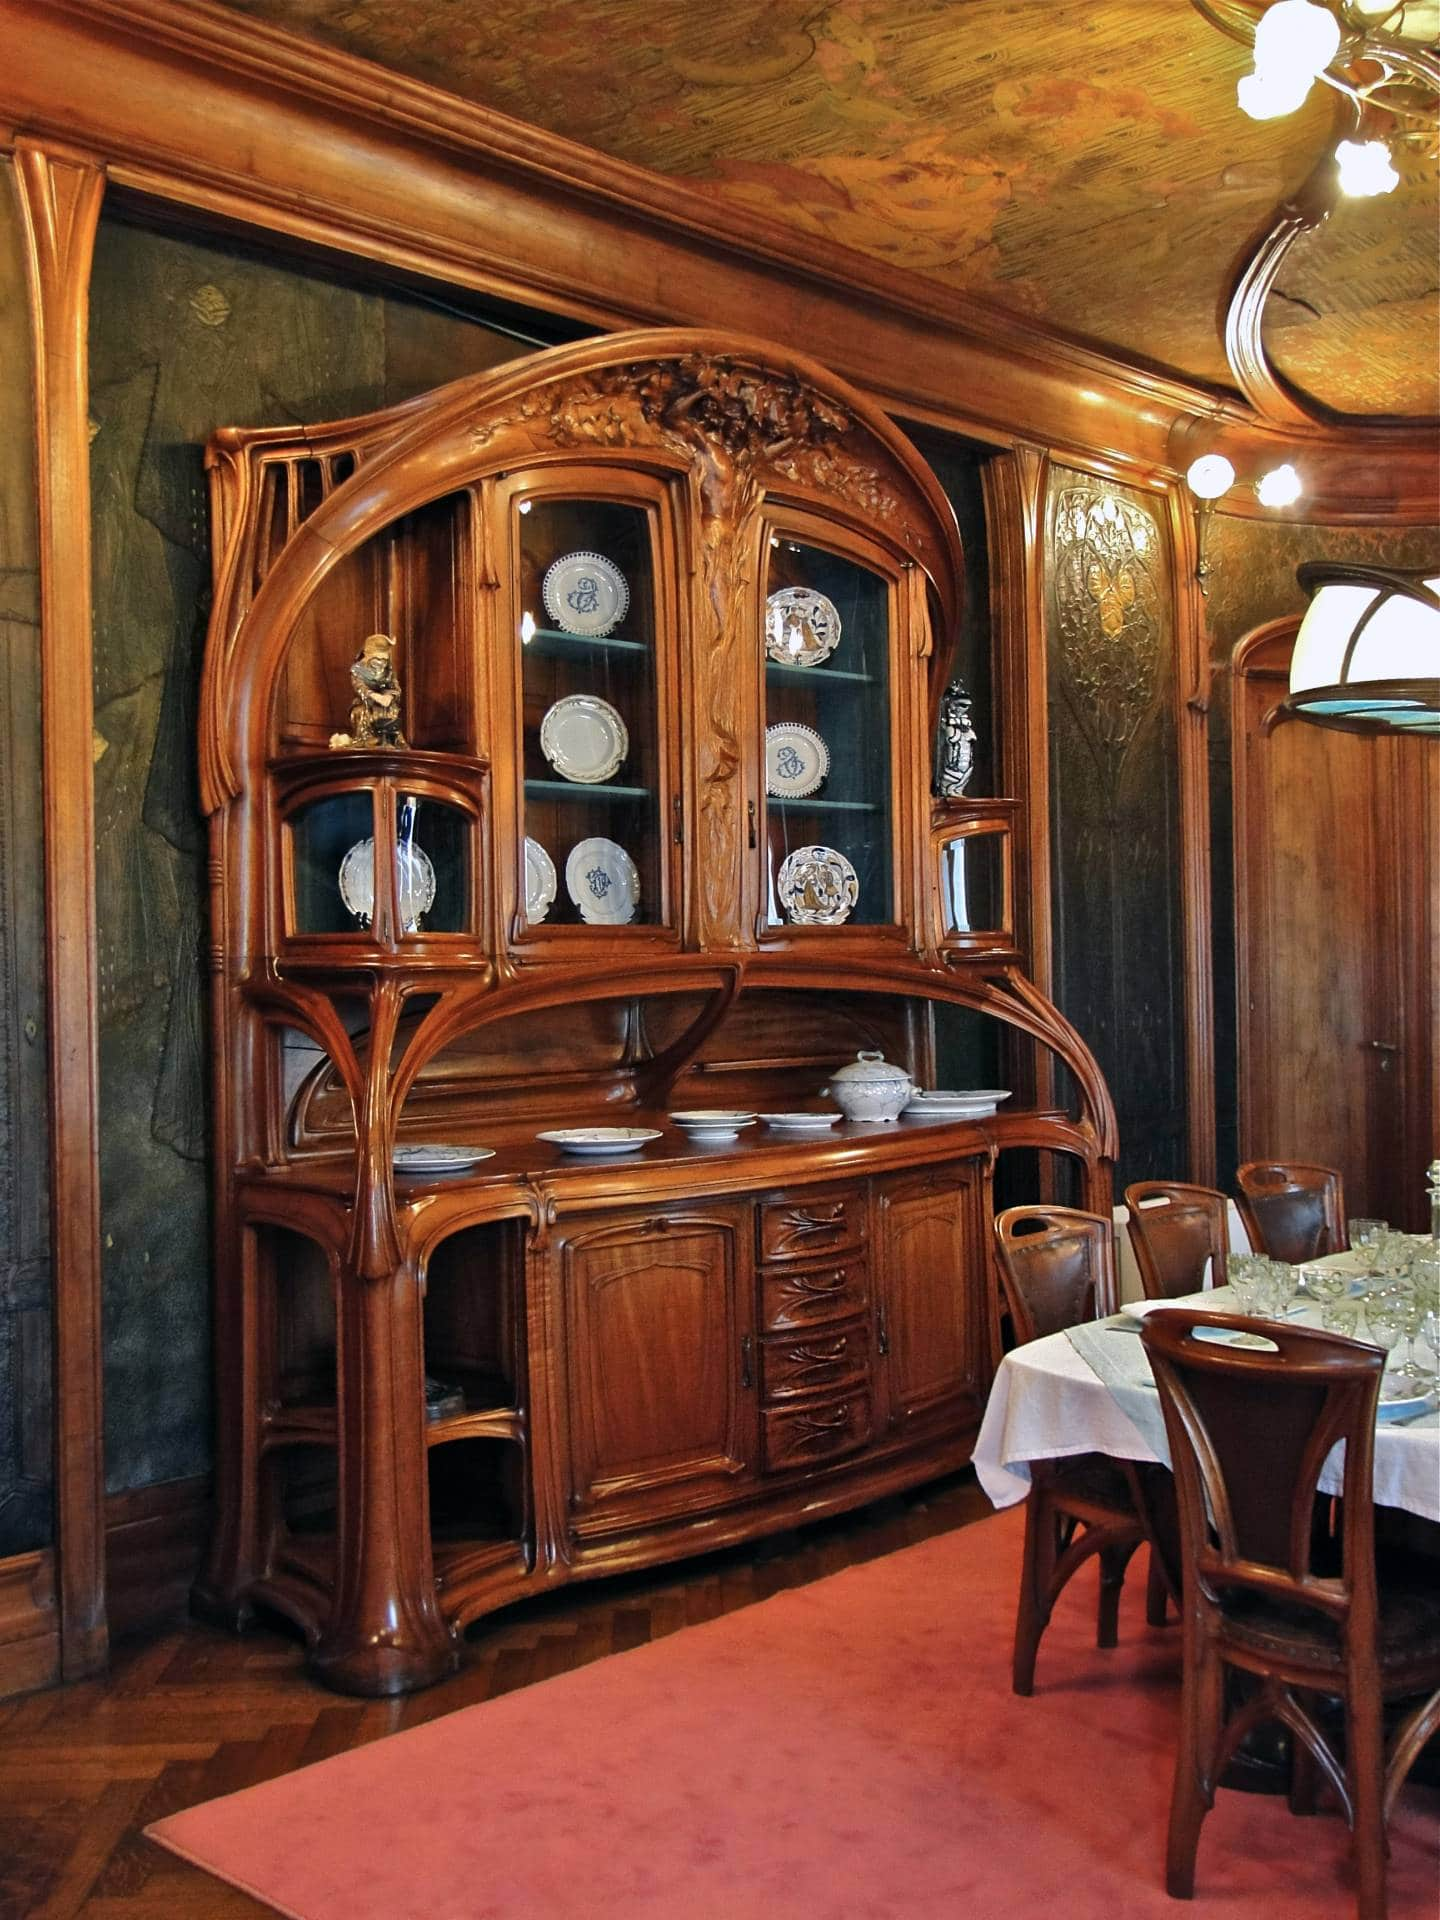 Art Nouveau Interior Design Style. Ancient chest of drawers made of solid wood